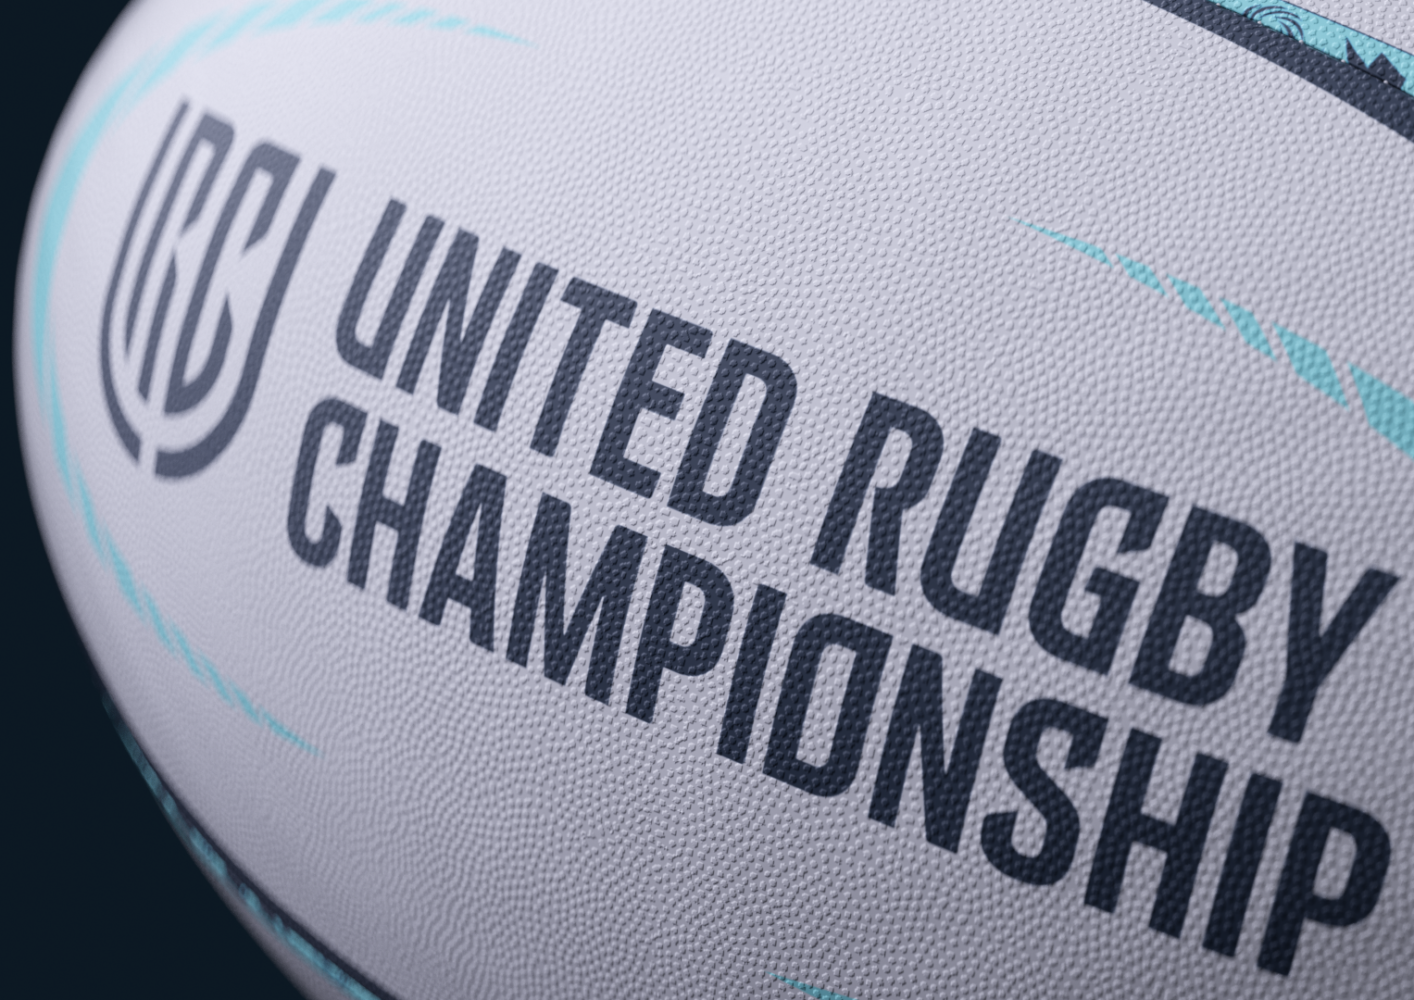 Introducing the United Rugby Championship